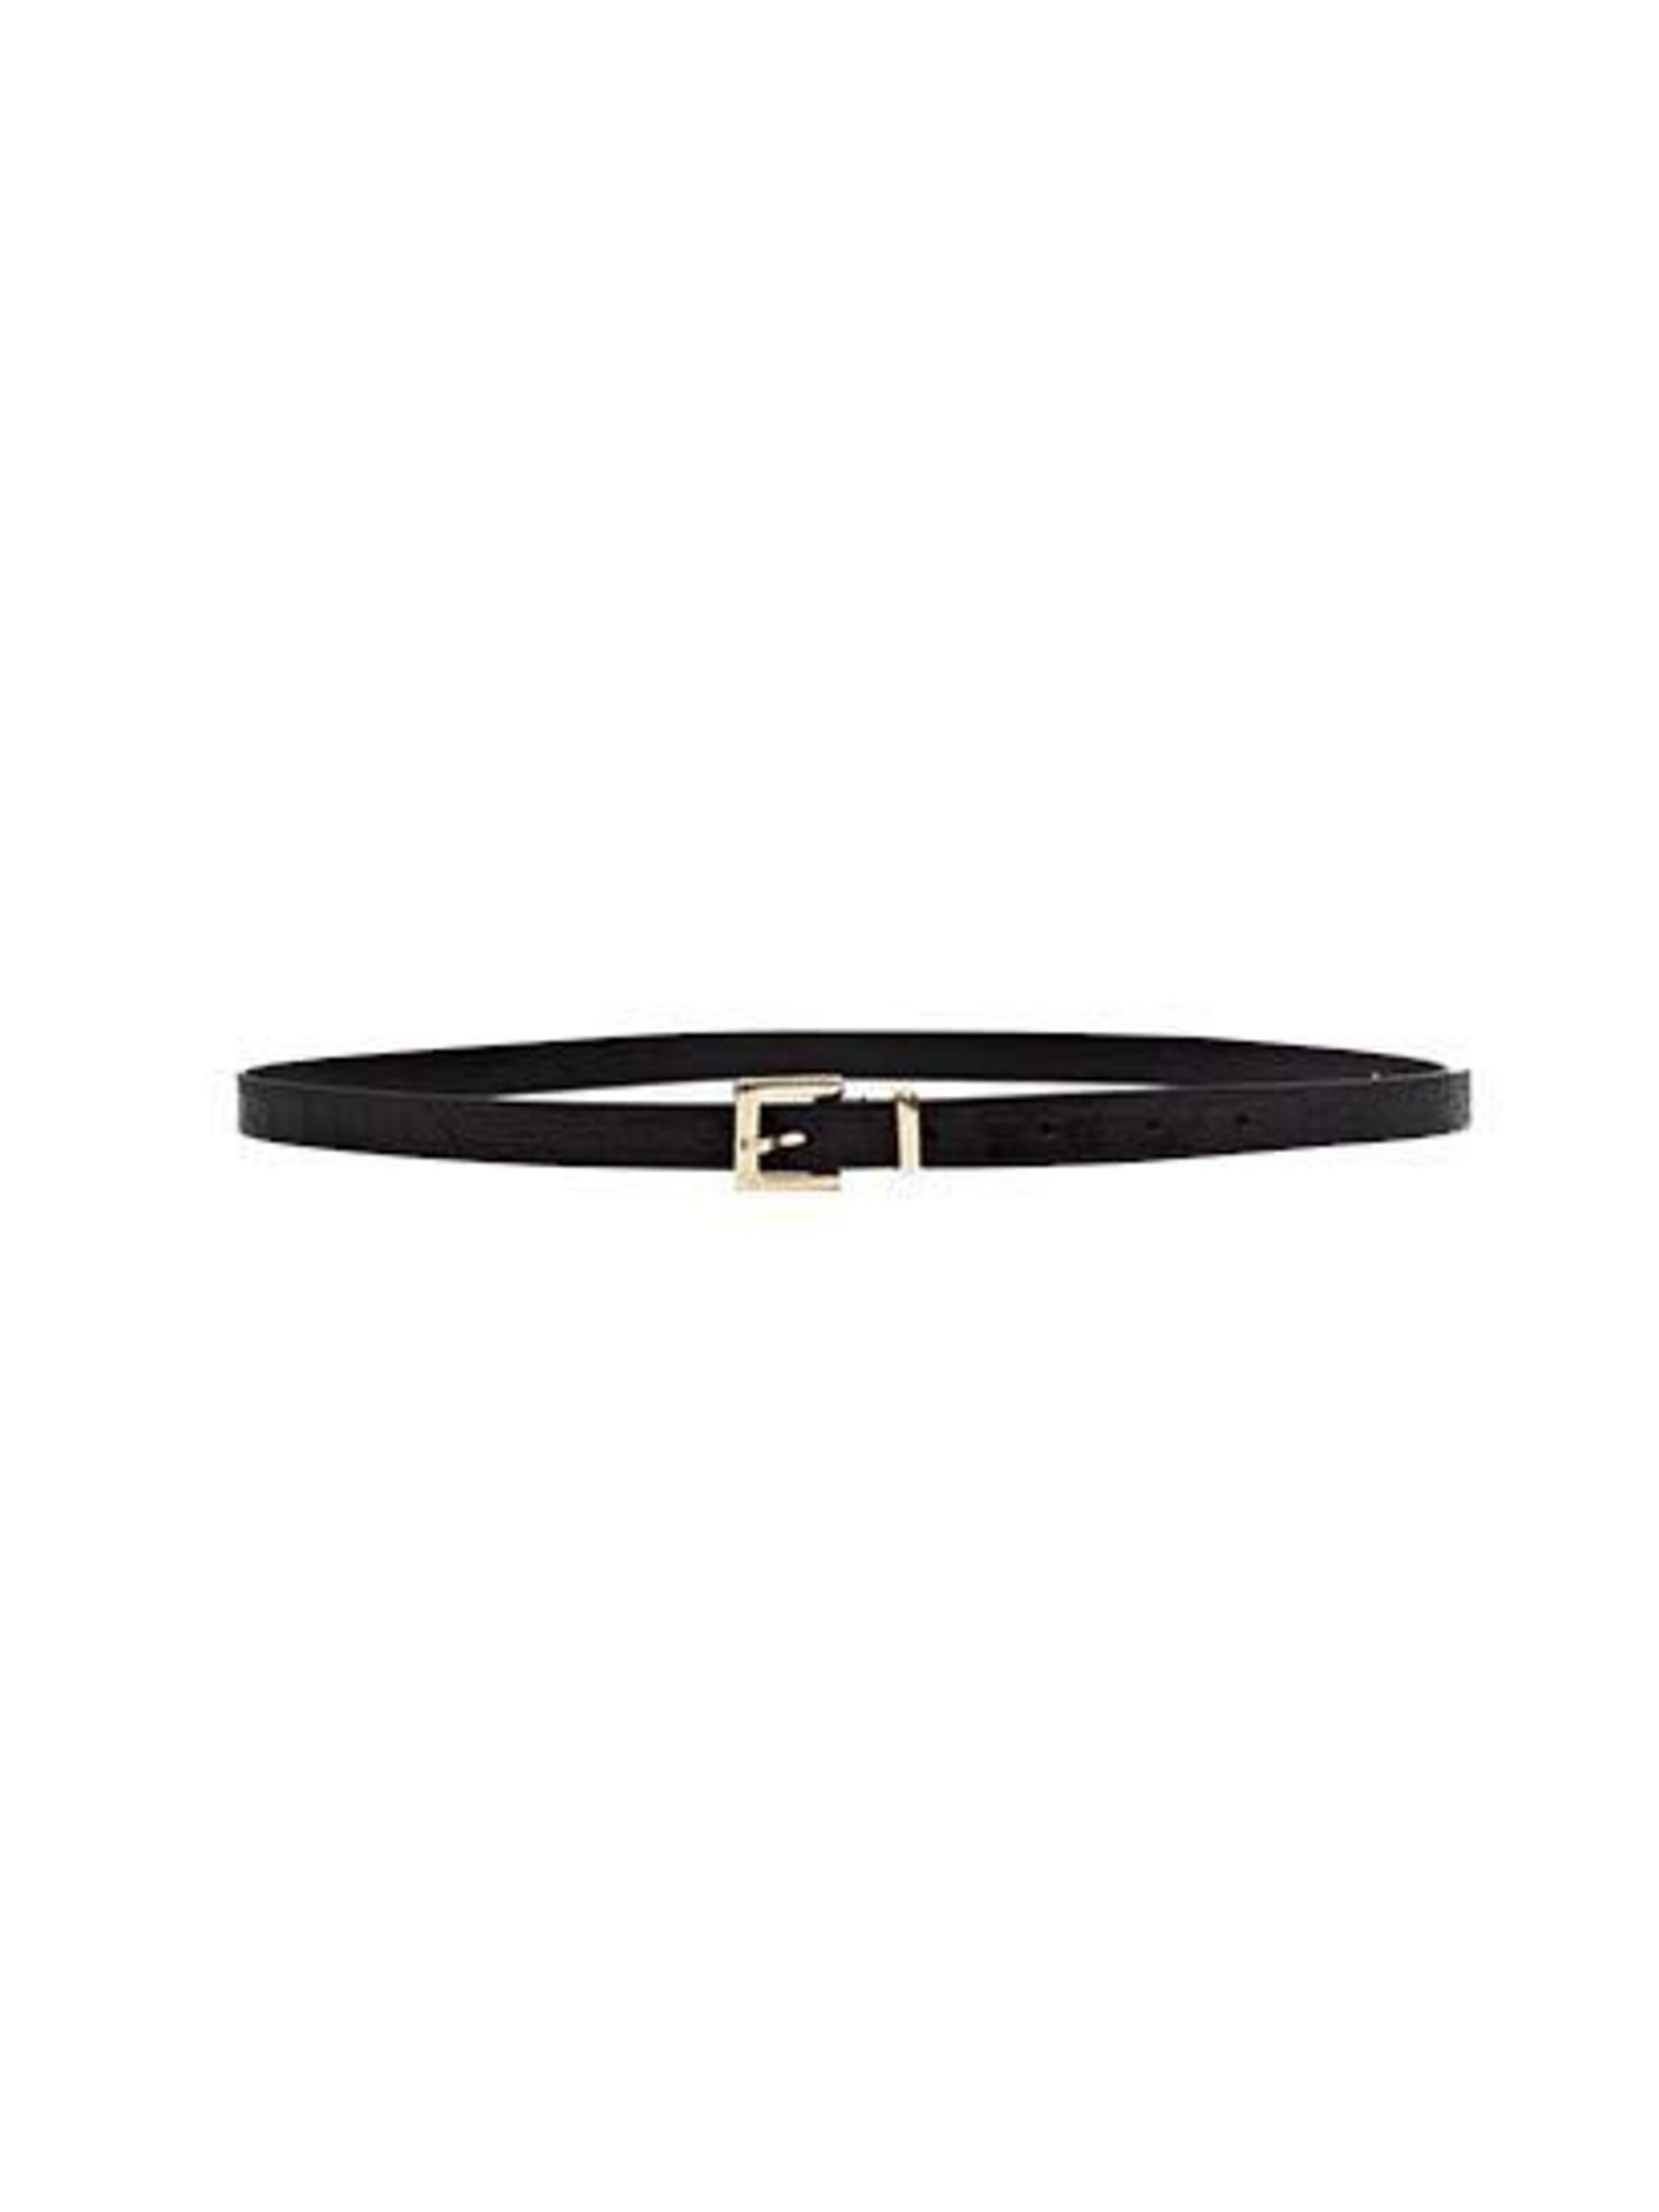 "<p><a href=""http://www.frenchconnection.com/product/Woman+New+In/SCCAC/Felix+Skinny+Leather+Belt.htm"">French Connection</a> belt, £30</p>"